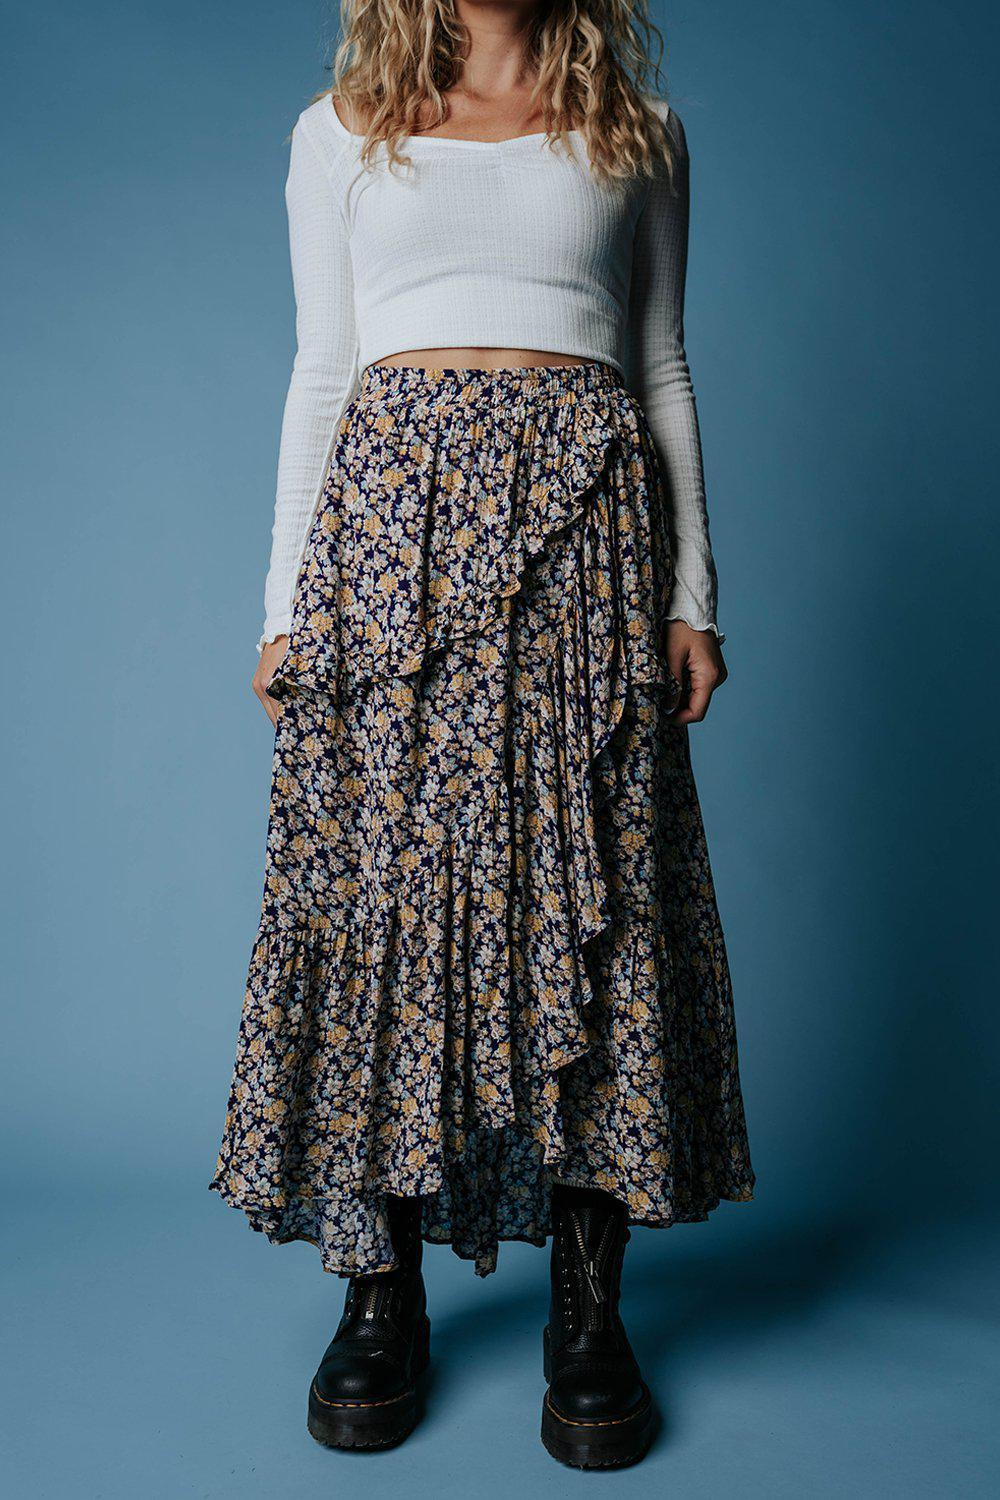 All Ruffled Up Floral Maxi Skirt-Skirt-n/a-S-Clad & Cloth